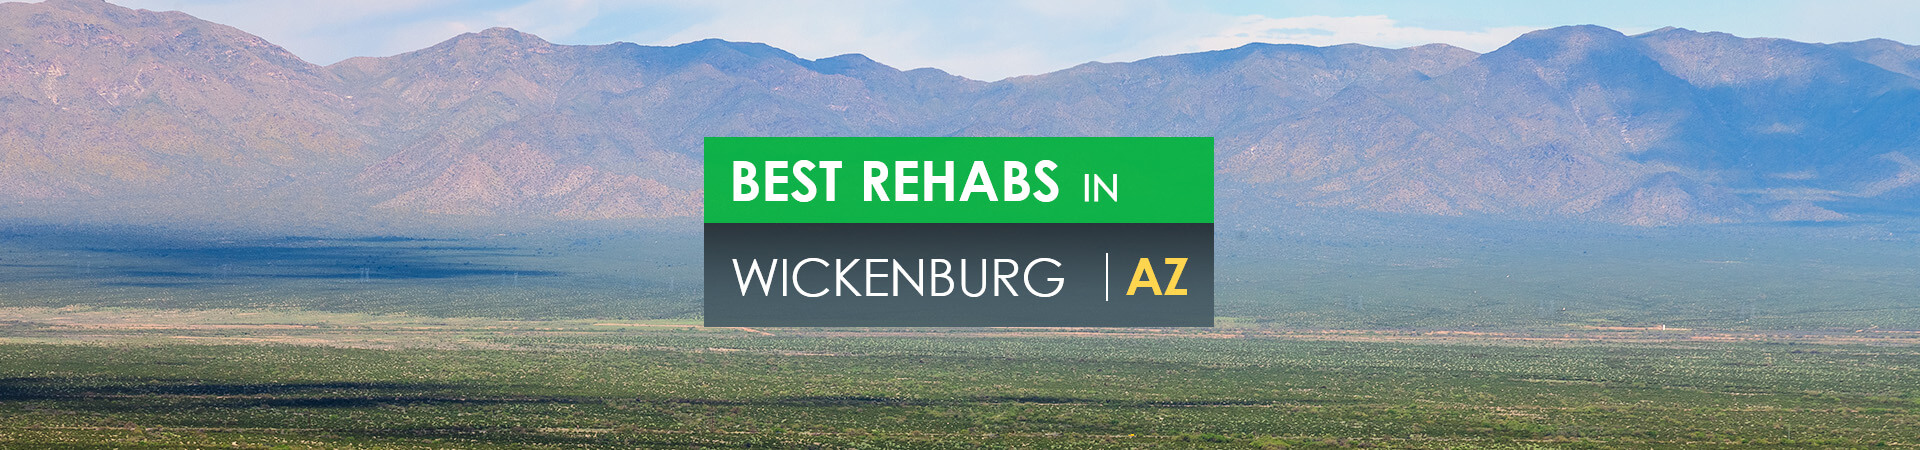 Best rehabs in Wickenburg, AZ